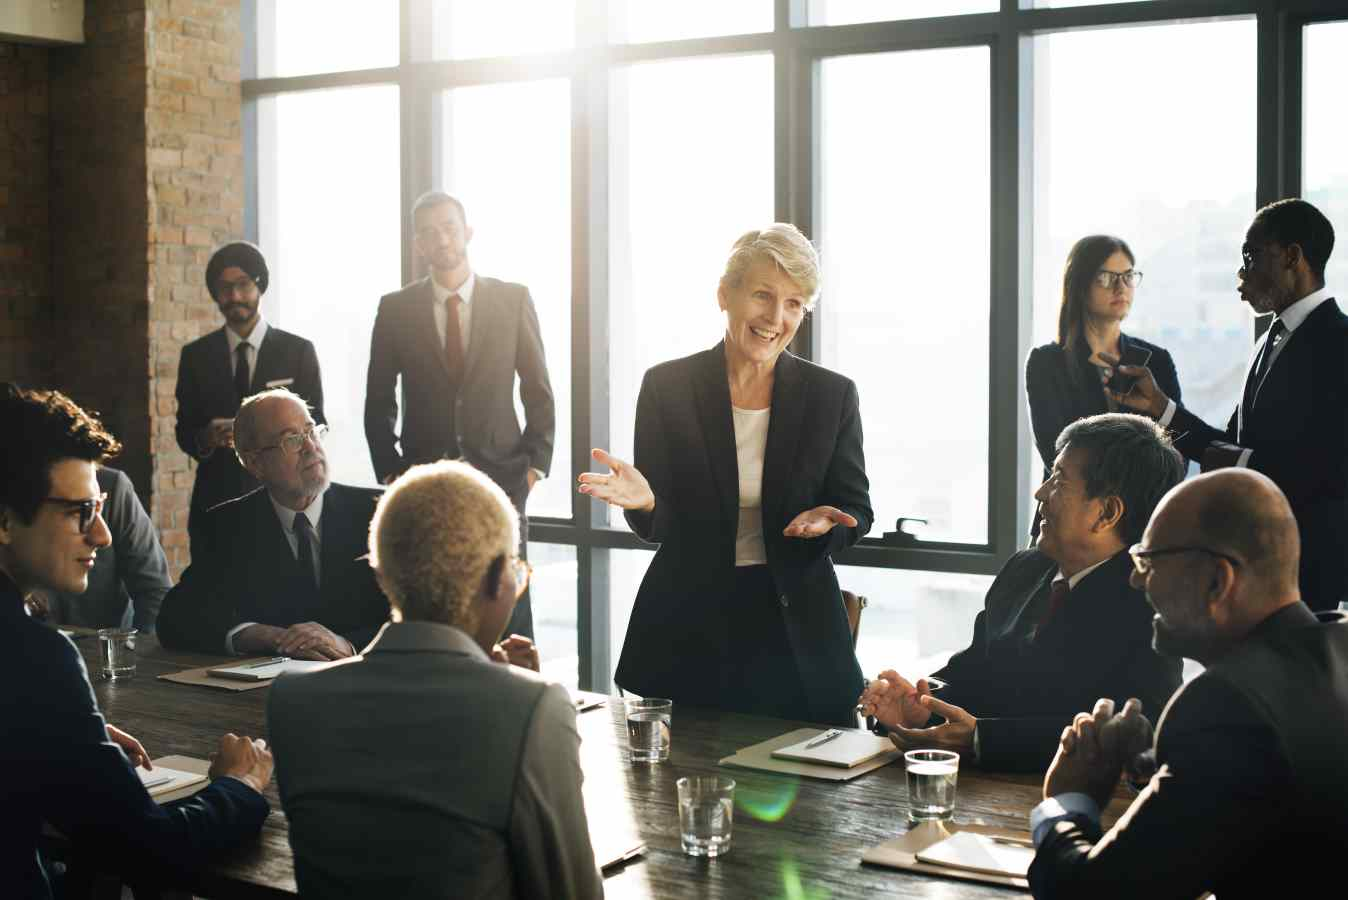 woman presenting to room of other business people